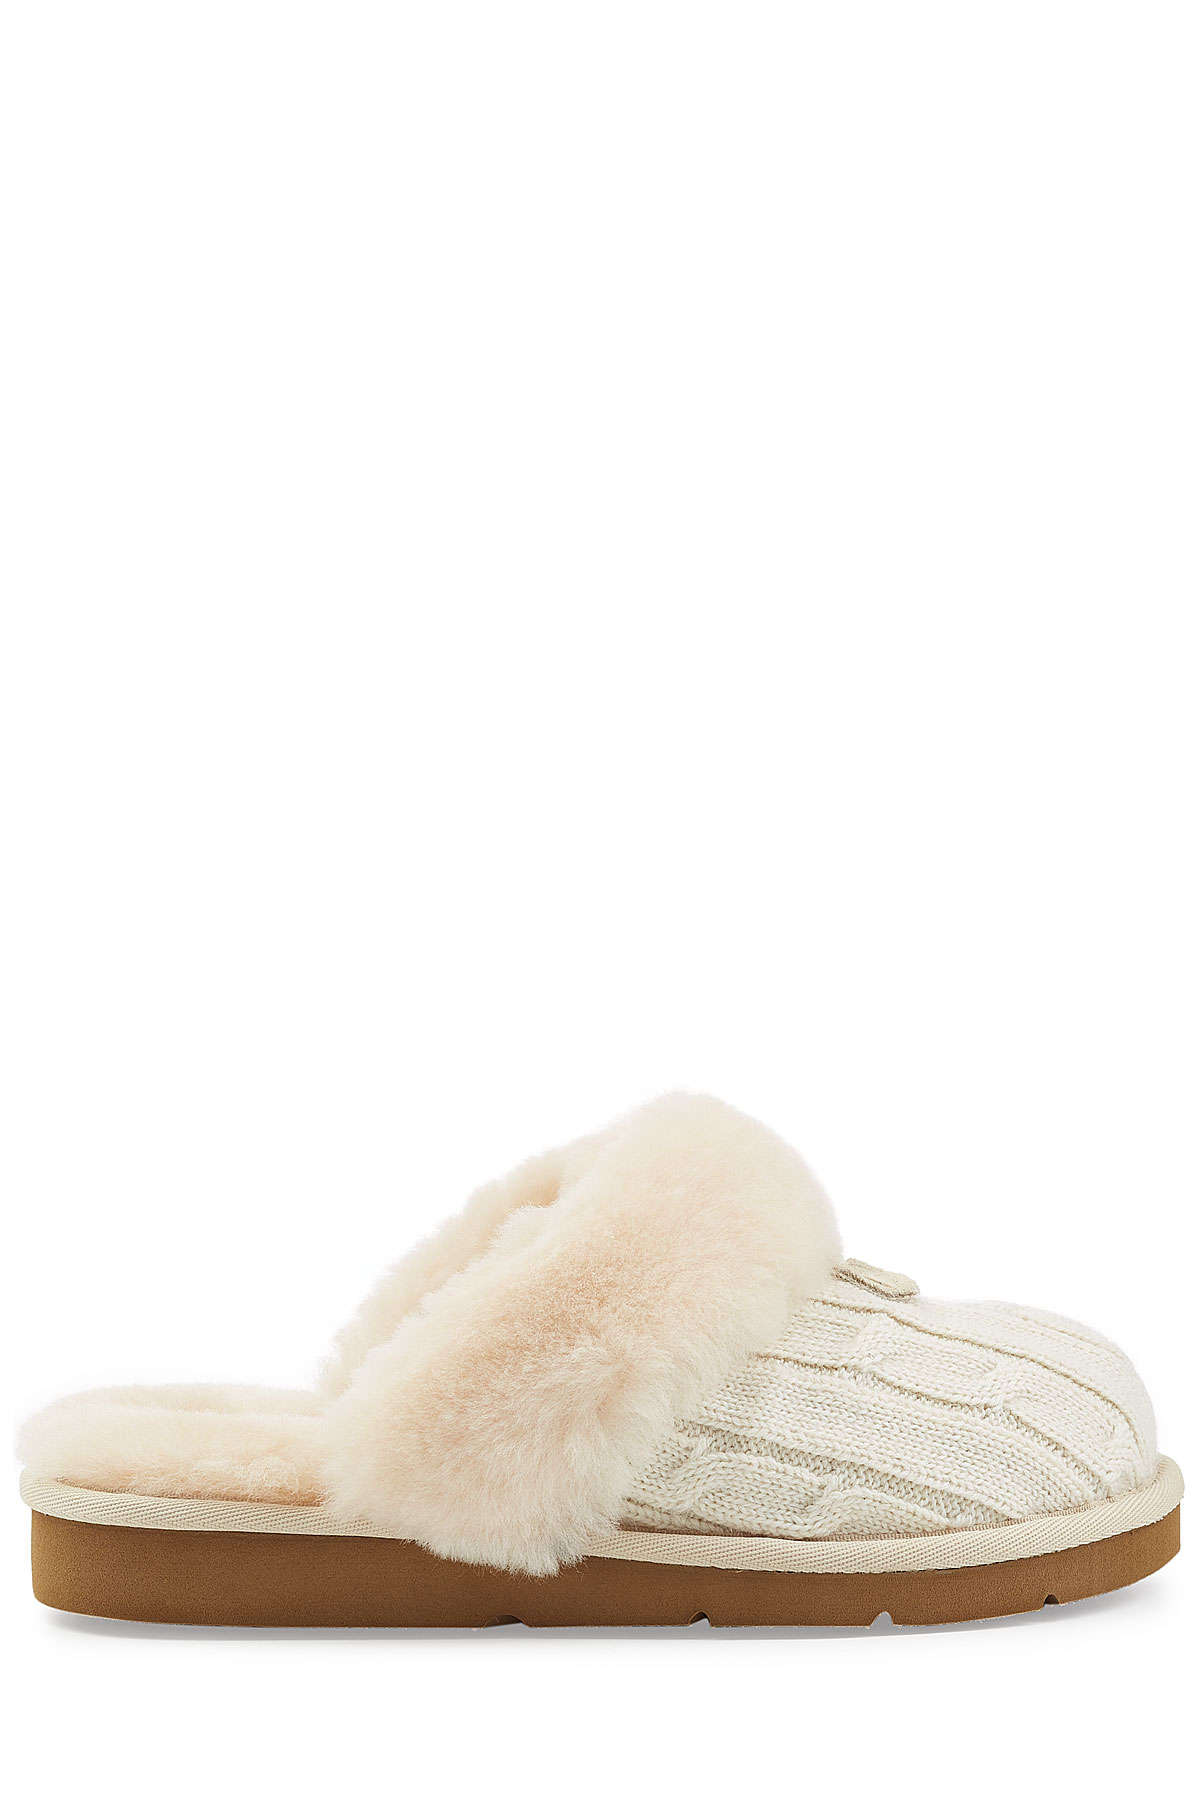 Ugg Cozy Knit Slippers With Wool And Sheepskin White In Natural Lyst